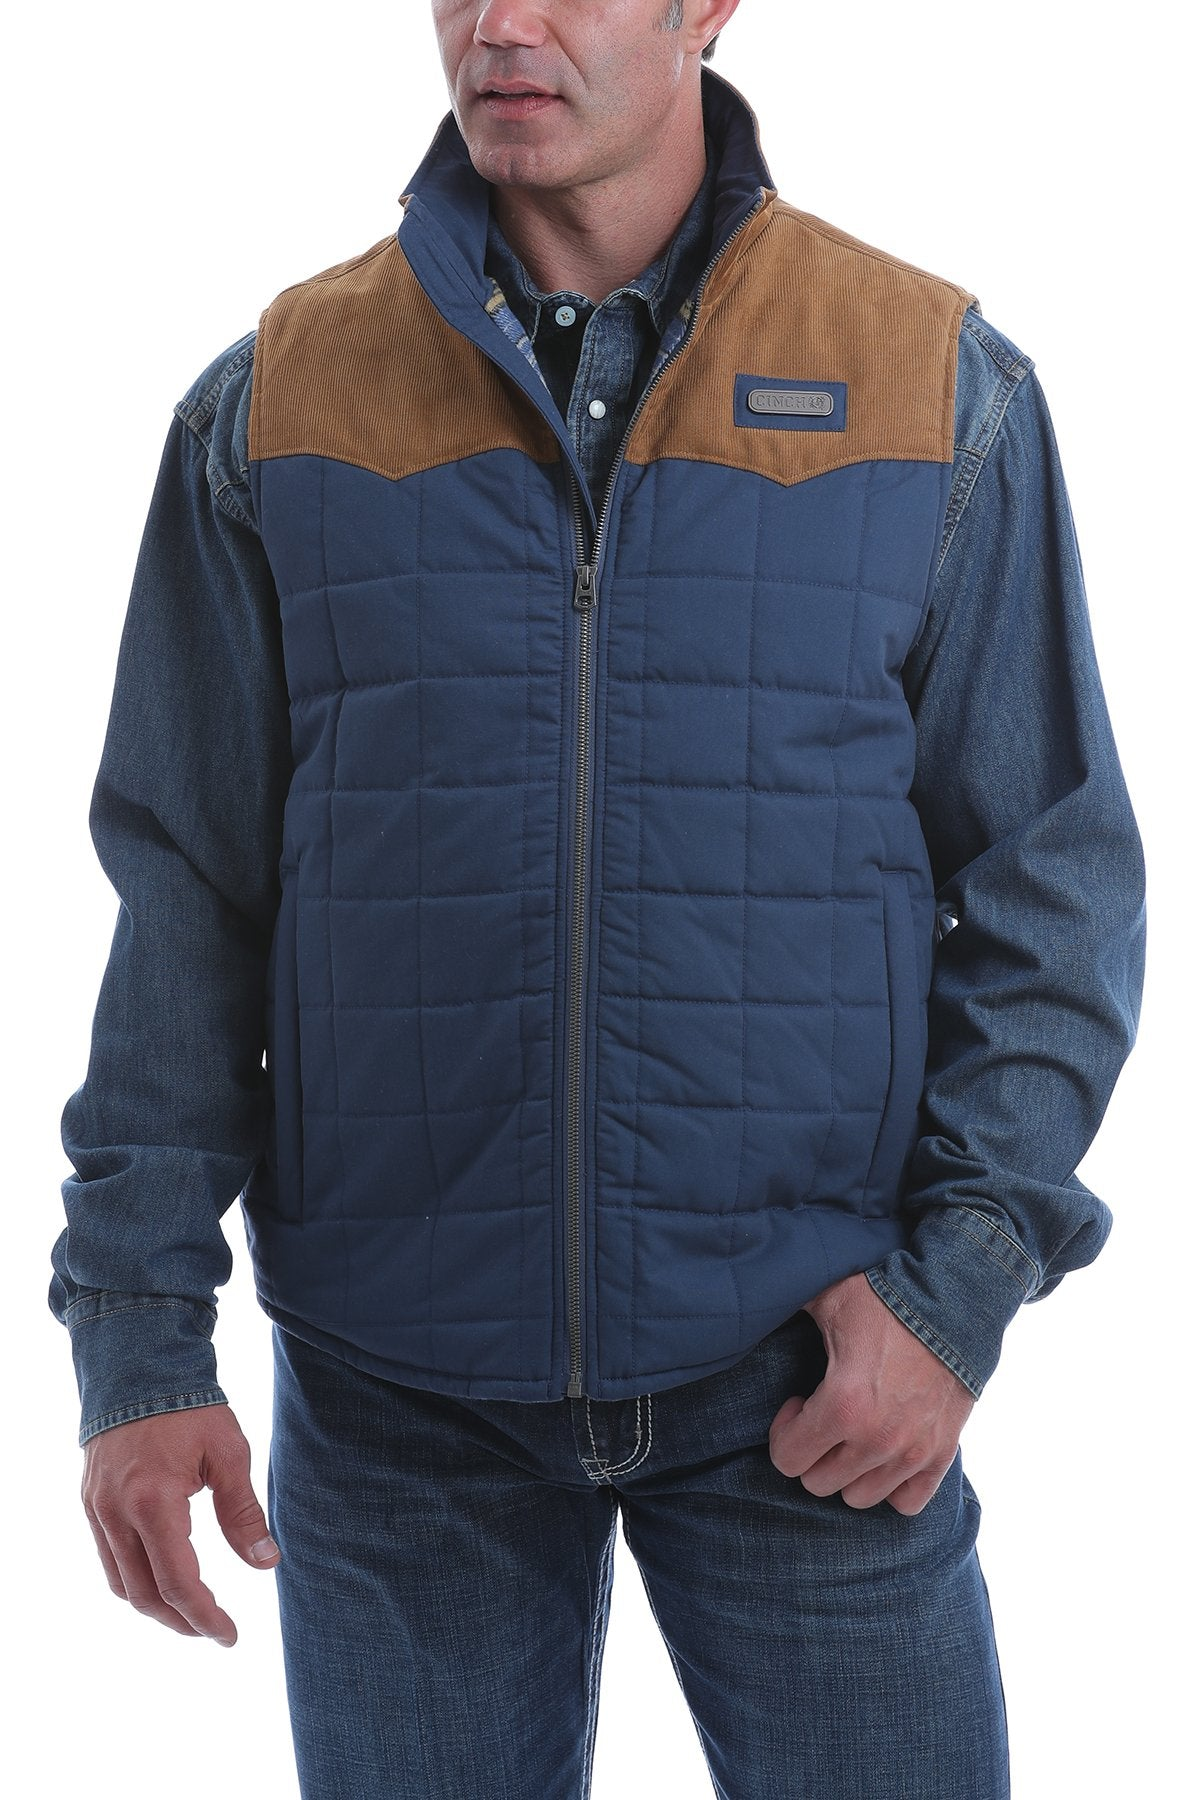 Cinch Men's Quilted Polyfill Puffer Vest - Blue